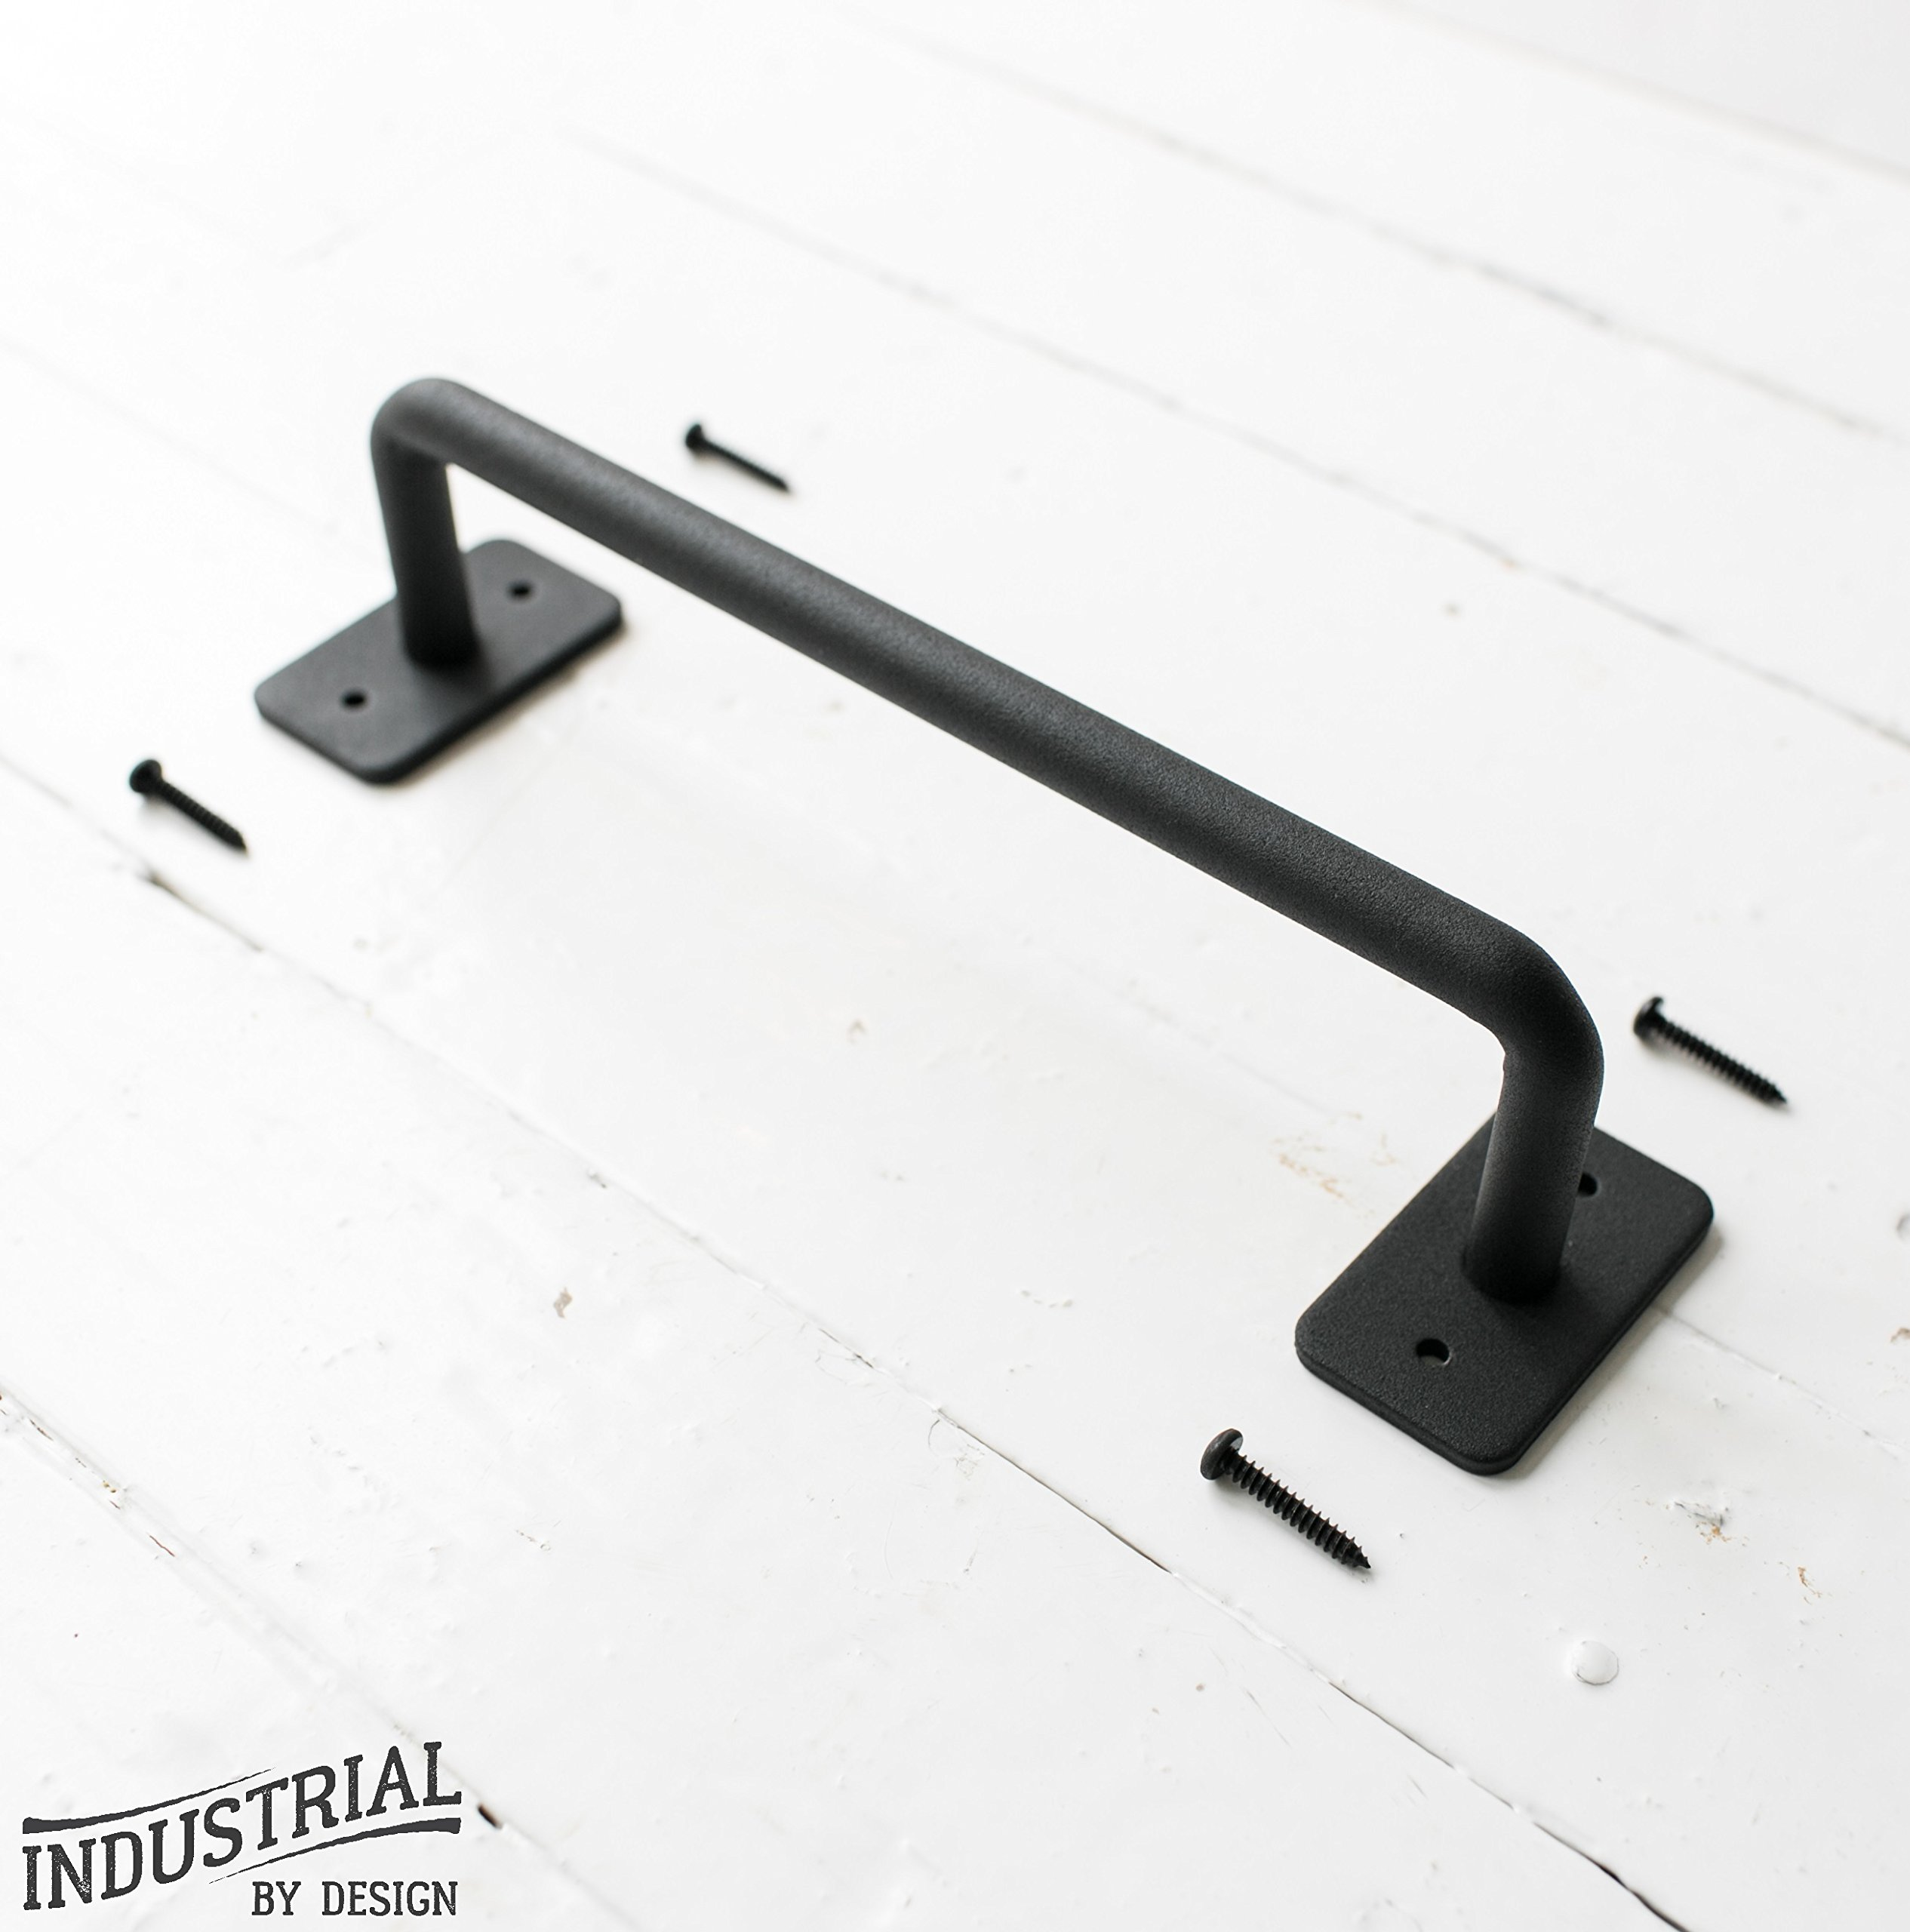 Barn Door Handle ▫ Includes Four Installation Screws ▫ Heavy Duty, Durable Powder Coated Black Finish Matches Industrial By Design Hardware Kits ▫ 10.25'' x 2.5'' of Steel